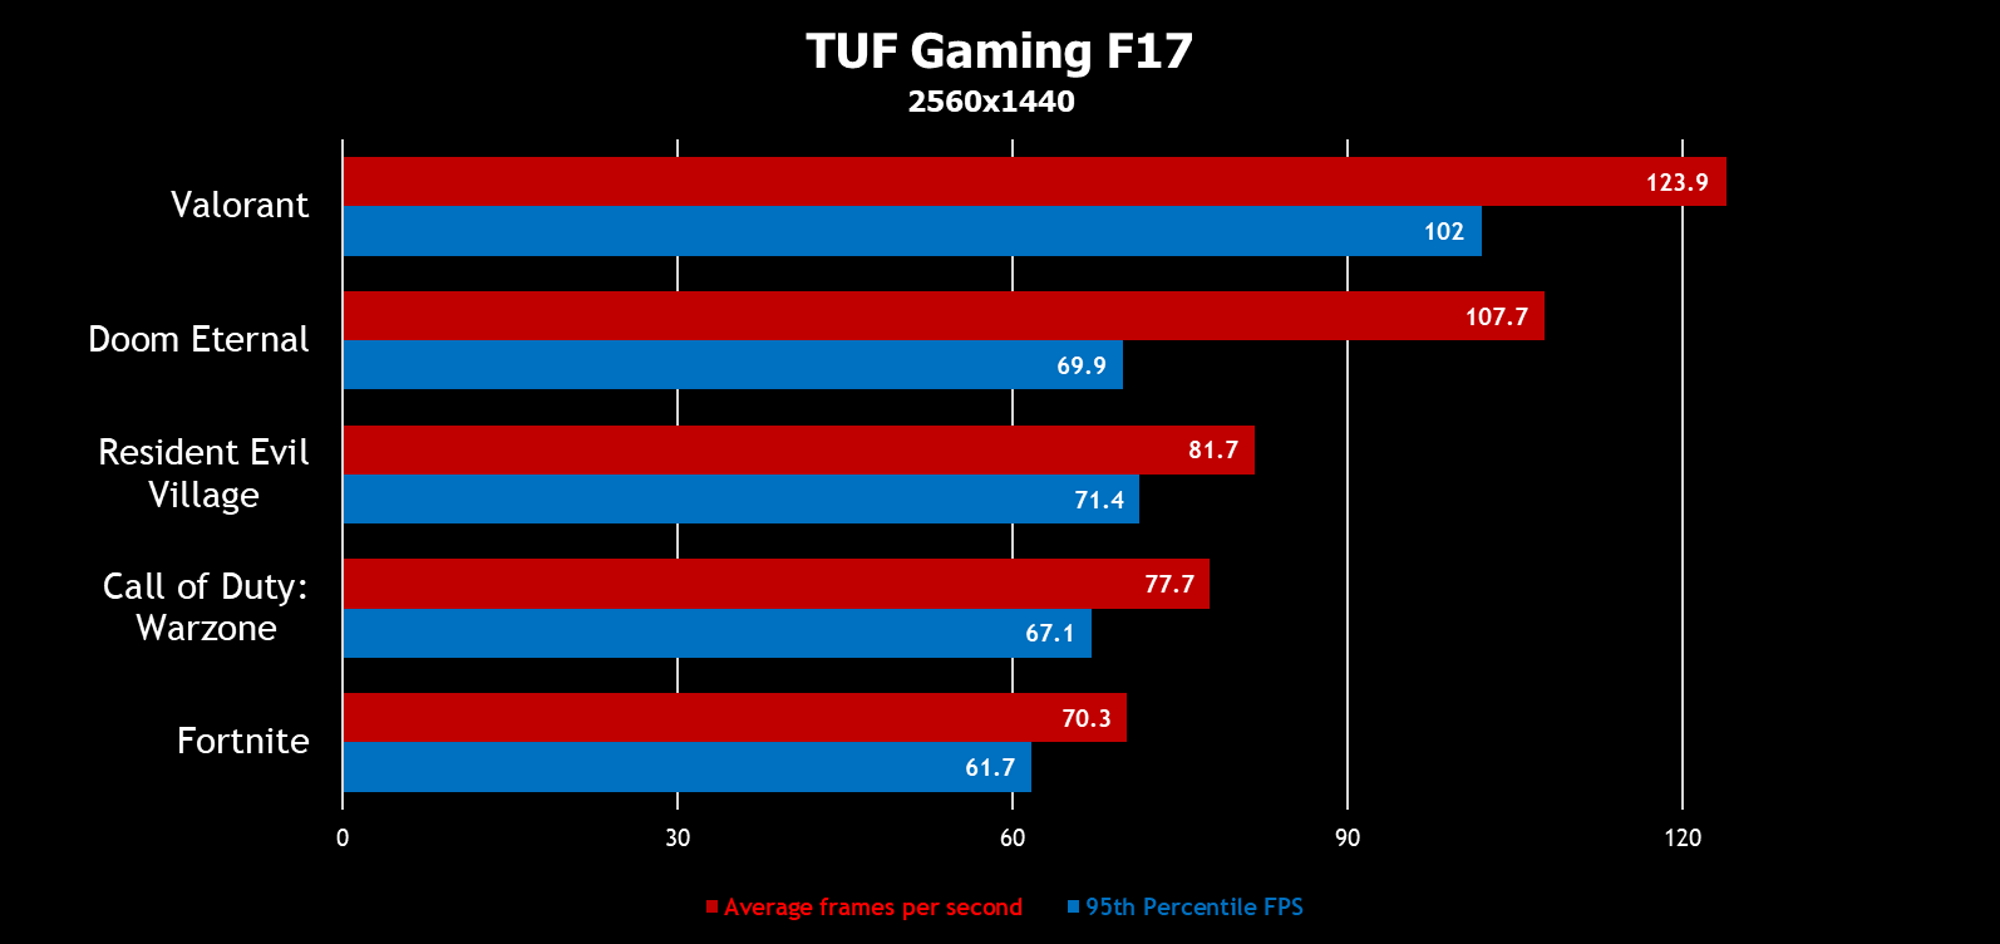 f17-all games-3